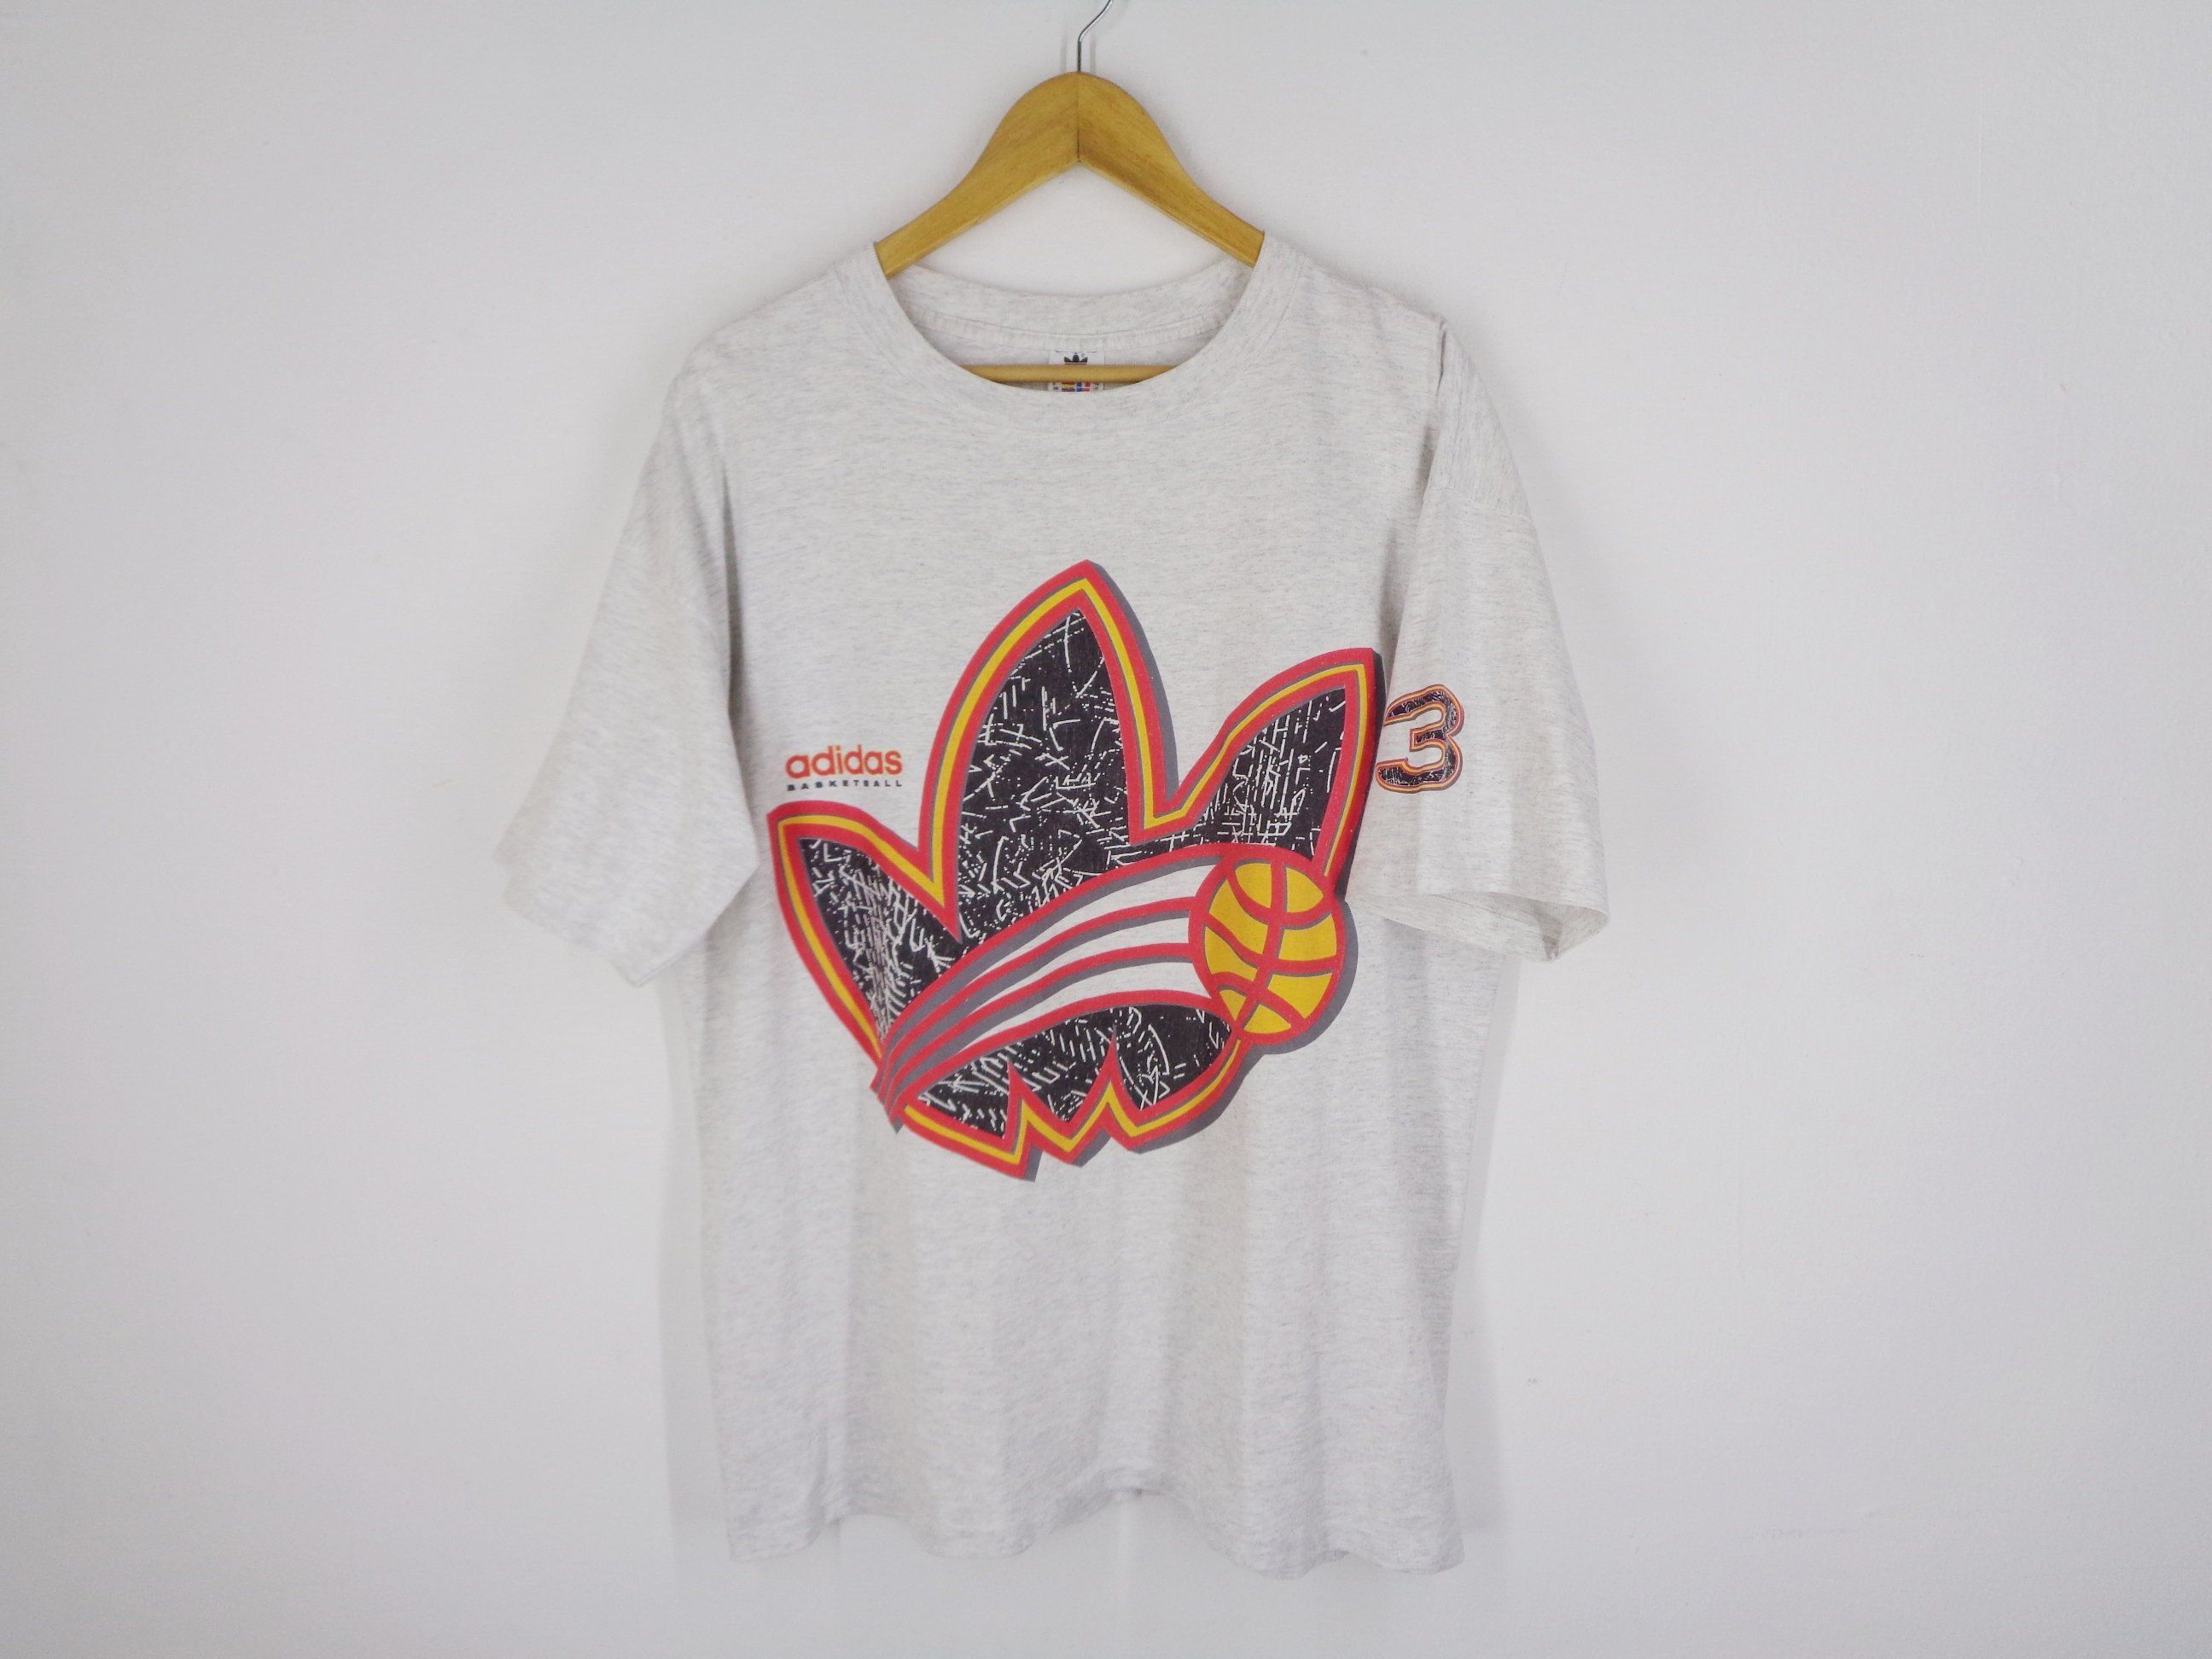 Escribe email Recogiendo hojas Identidad  Adidas Shirt Vintage Adidas T Shirt Vintage 90's Adidas Basketball Trefoil  Big Logo Made in USA Tee T Shirt Size L | Vintage adidas, Adidas shirt,  Shirts